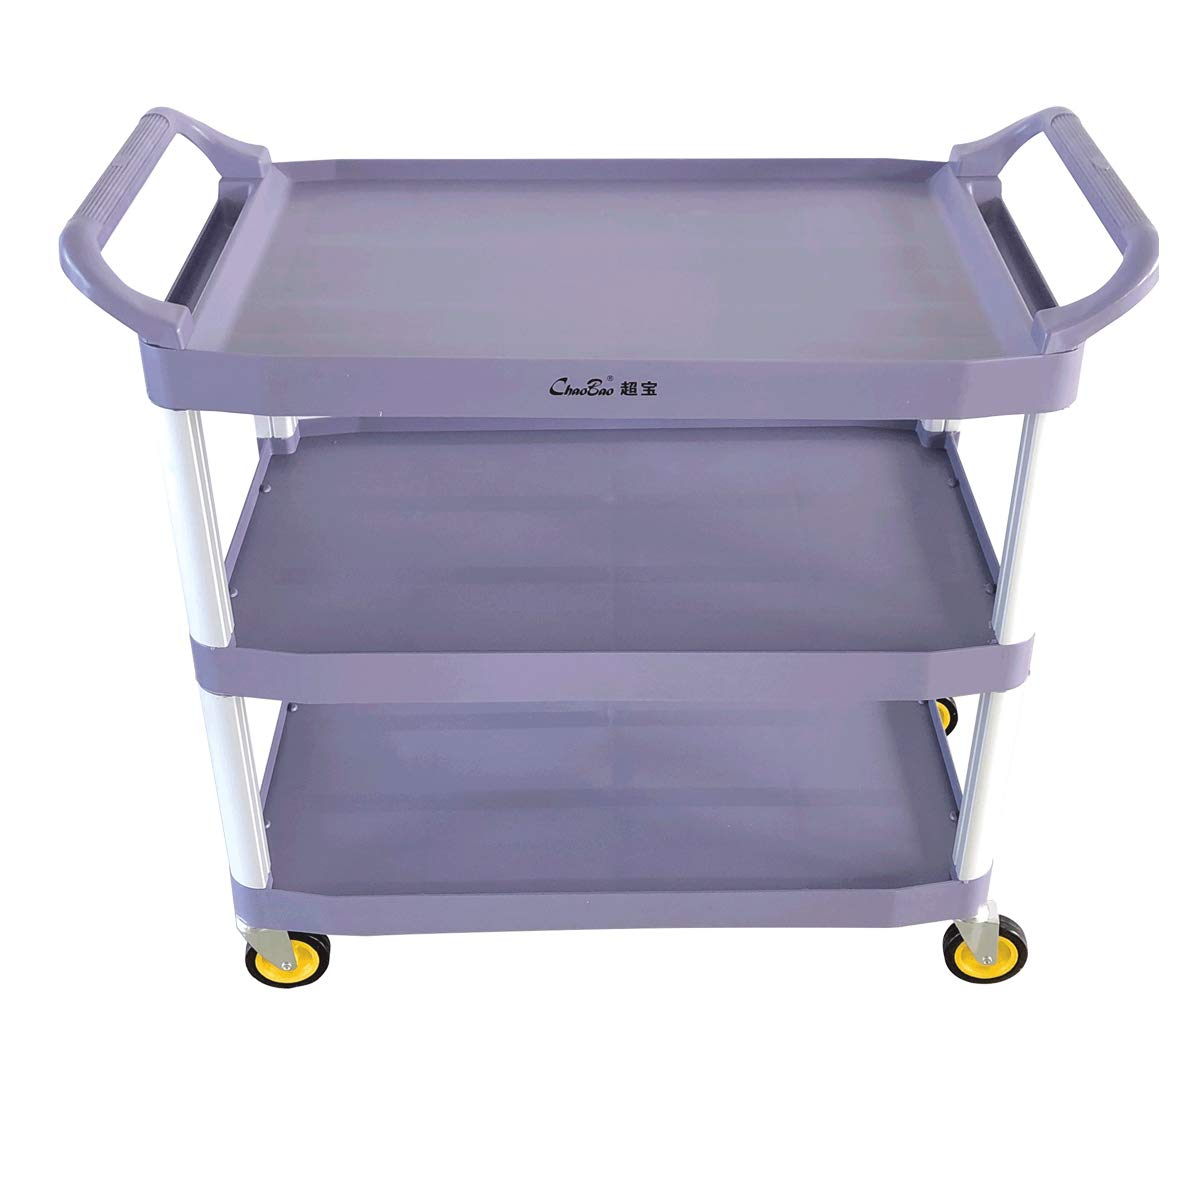 Z GRILLS 3-Shelf Rolling Service Cart by Z GRILLS